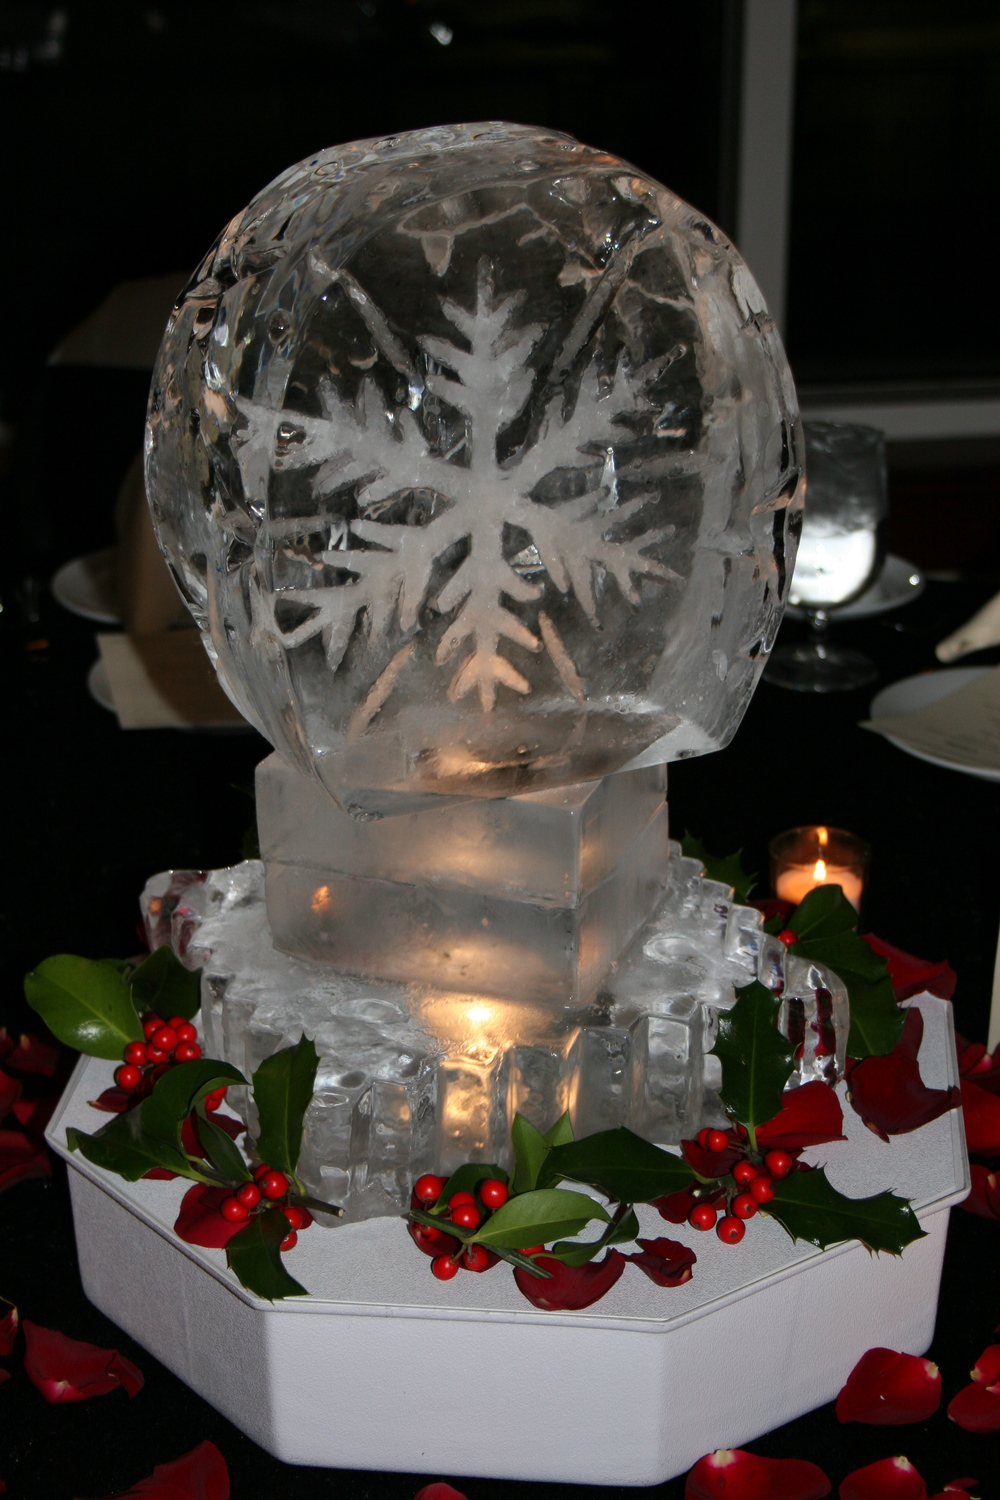 Tabletop Ice Sculptures Snowflakes 3.JPG